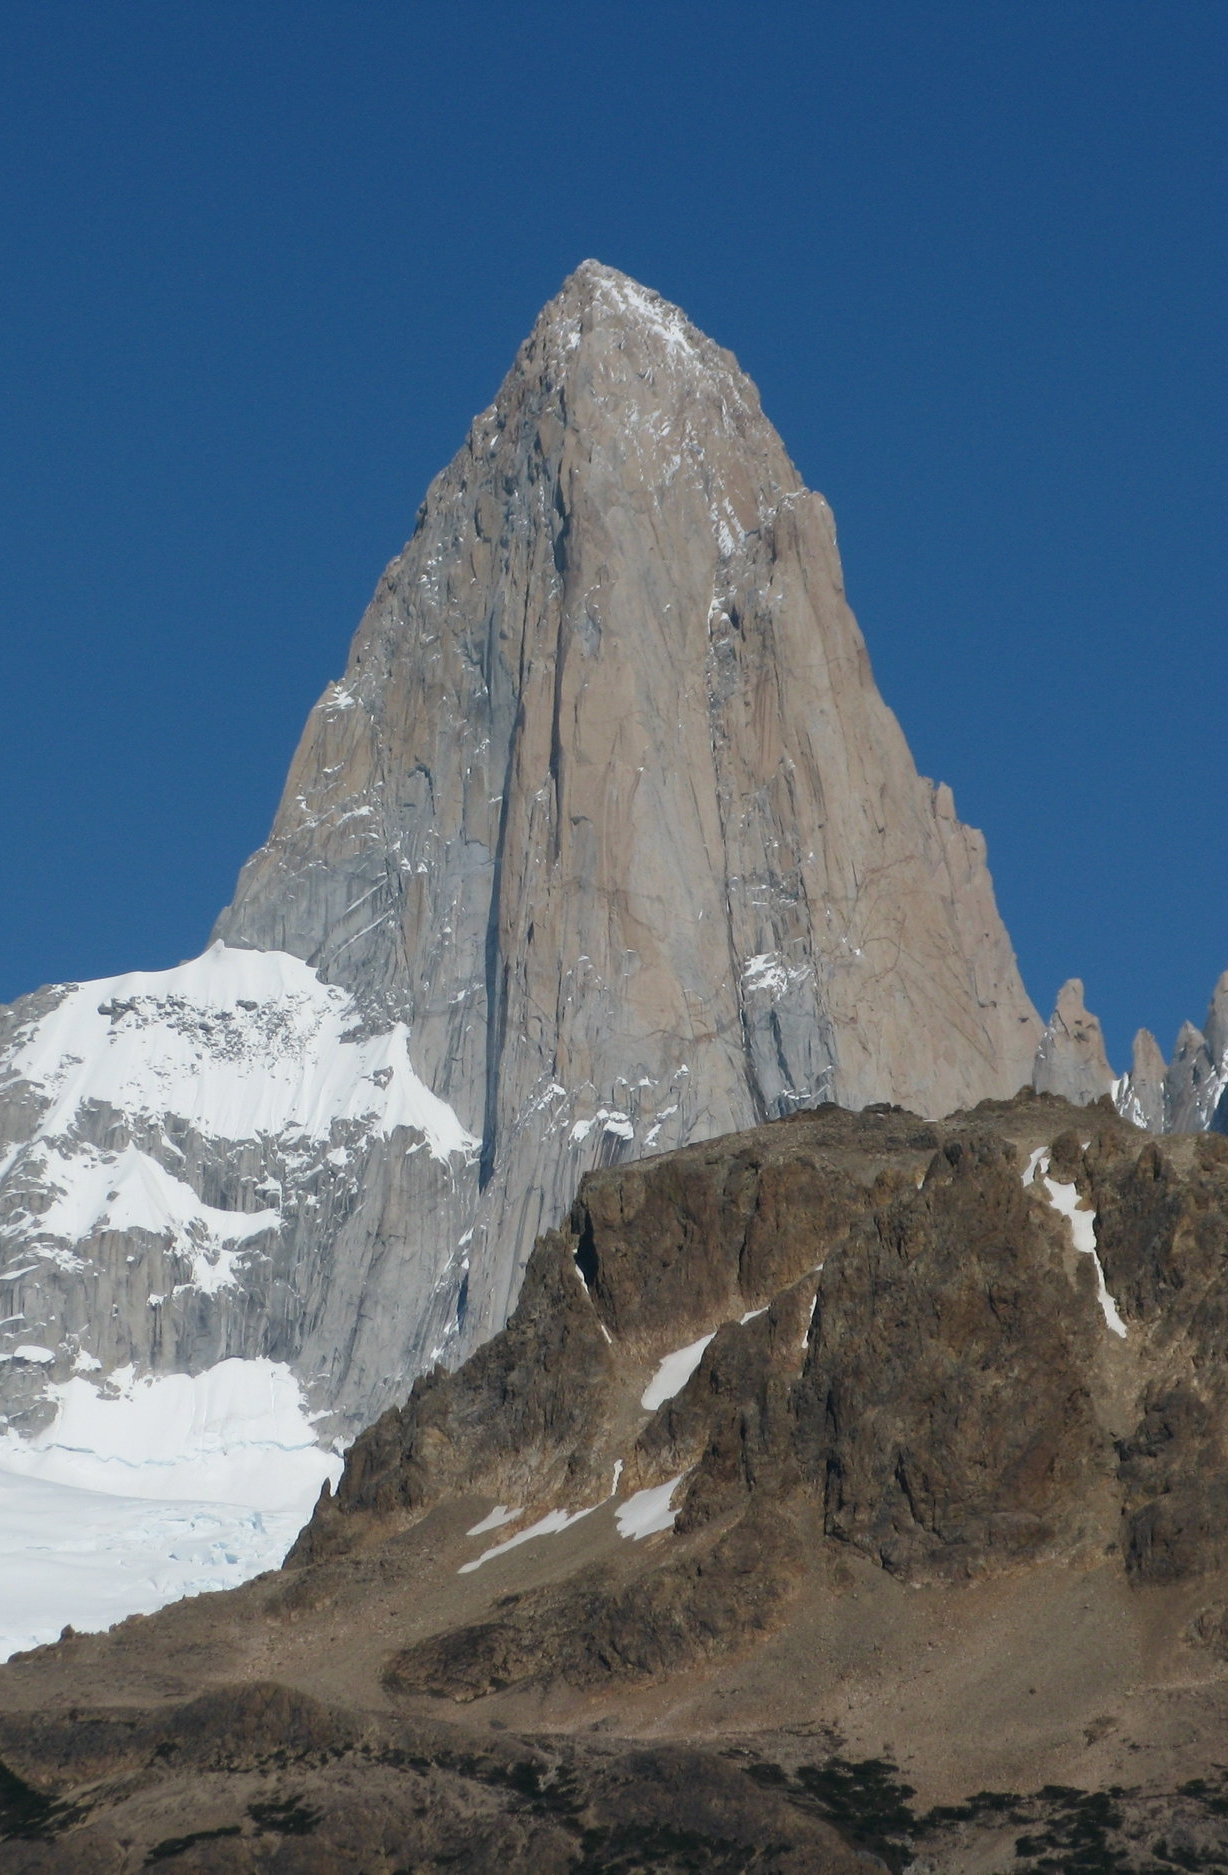 Mt. Fitzroy, with the North Pillar on the right